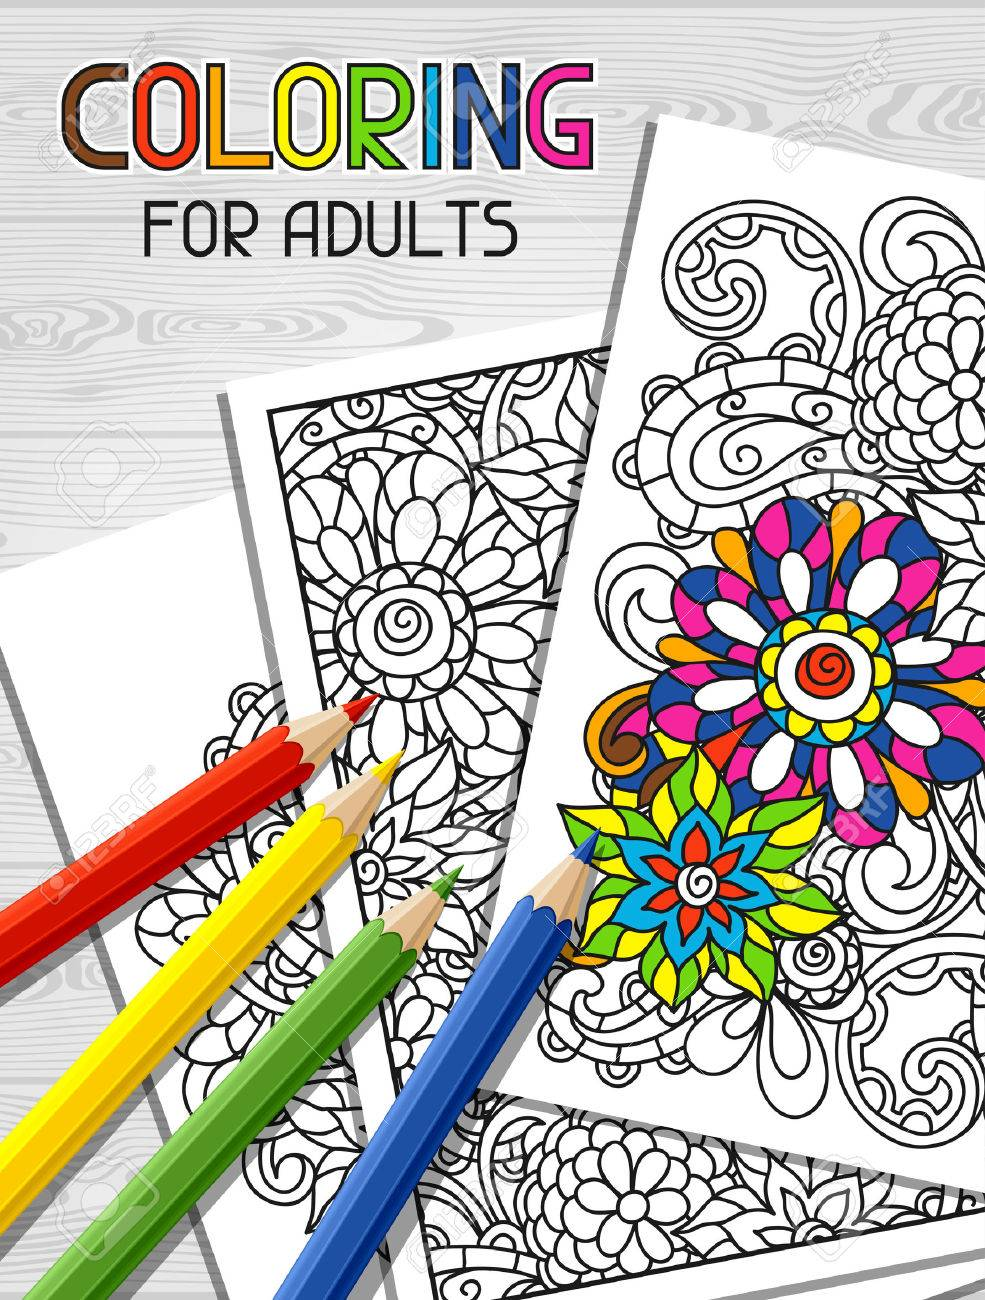 Adult coloring book design for cover. Illustration of trend item to relieve stress and creativity. - 50663555